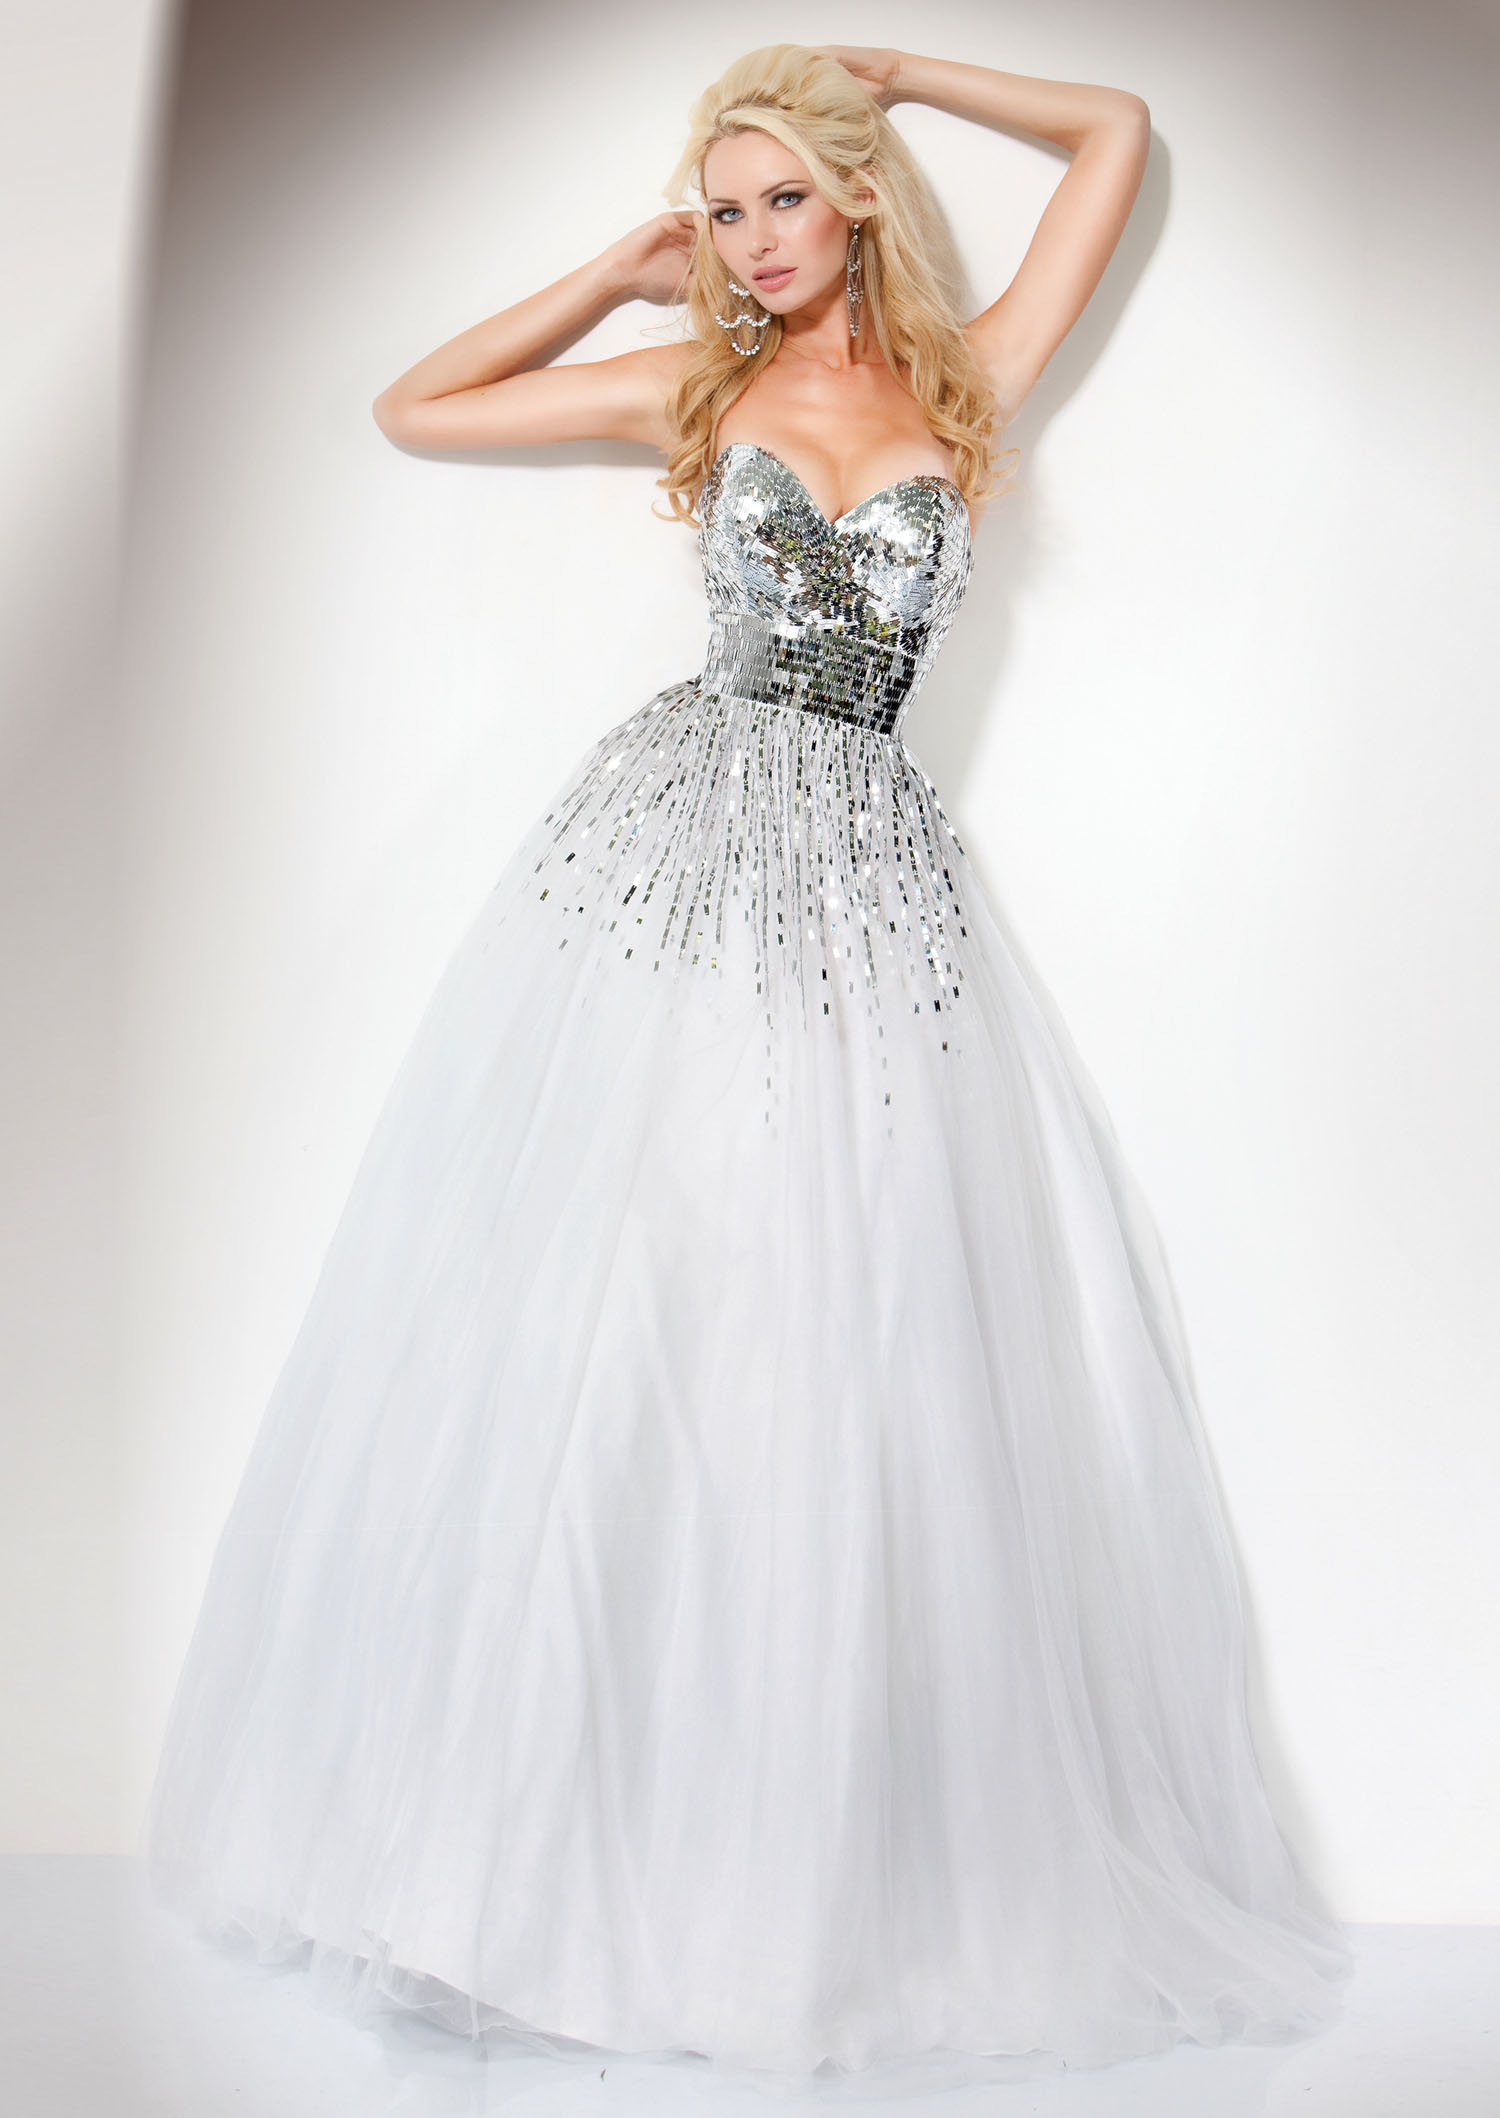 Jovani 159499 - Sequin White Ball Gown - RissyRoos.com